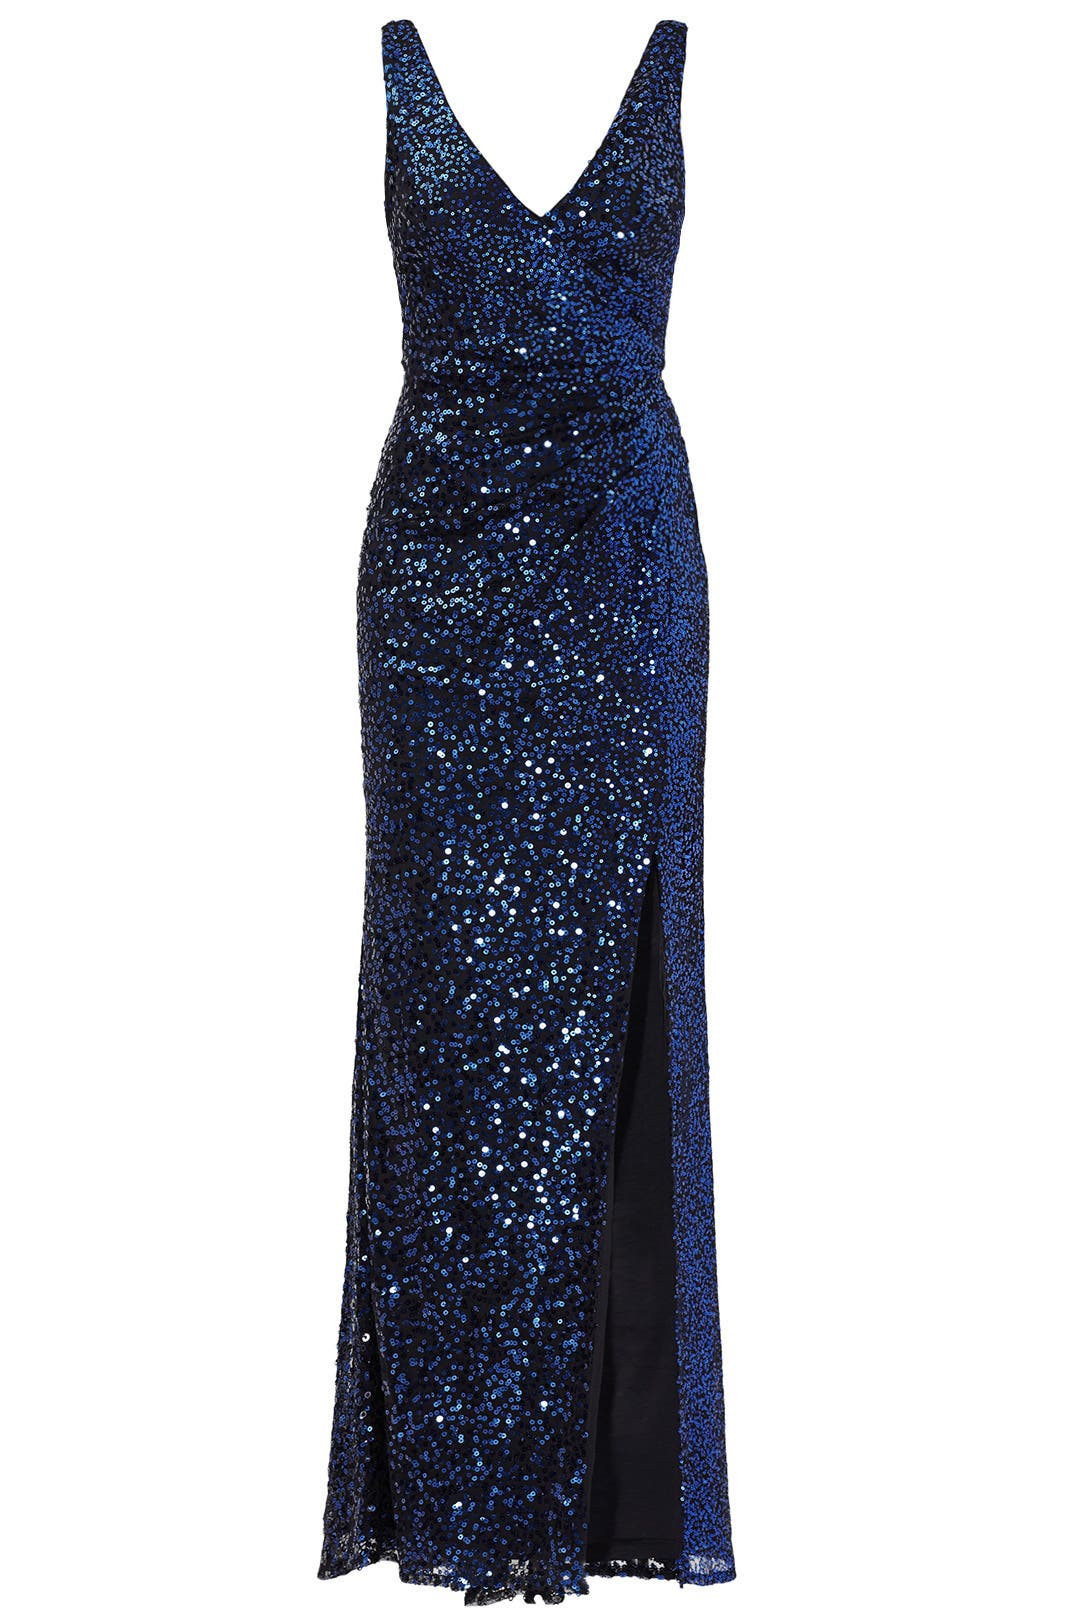 6ee01ab7f7b6d Ombre Astor Gown by Badgley Mischka for  135 - Page 2